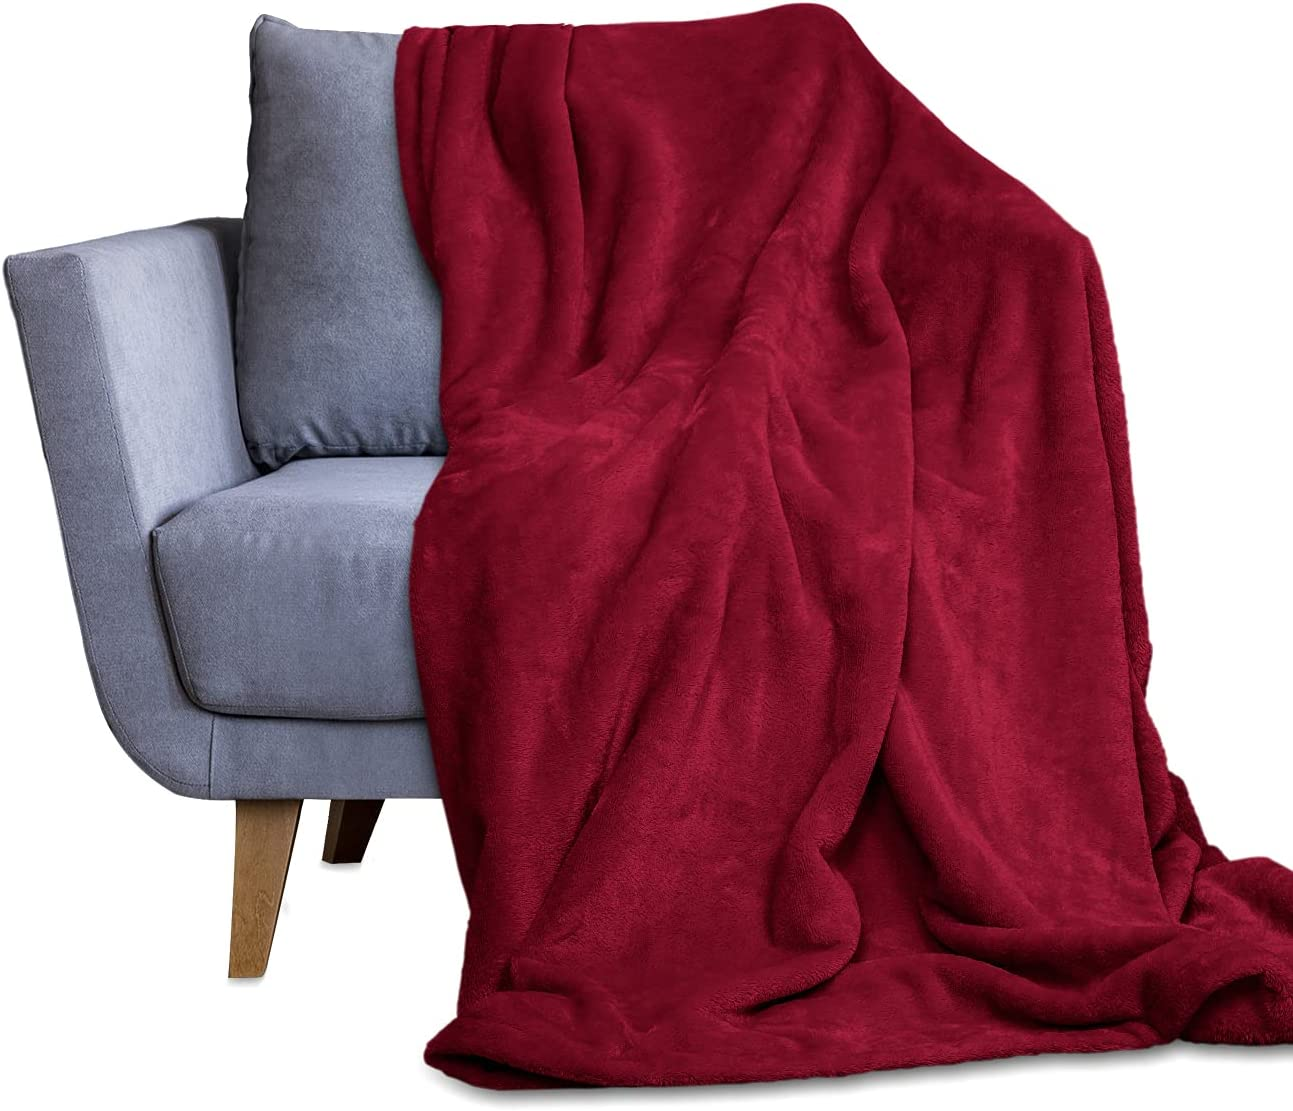 Throw Blanket for Couch Bed - Size Decorative Store Fleece New Shipping Free Shipping